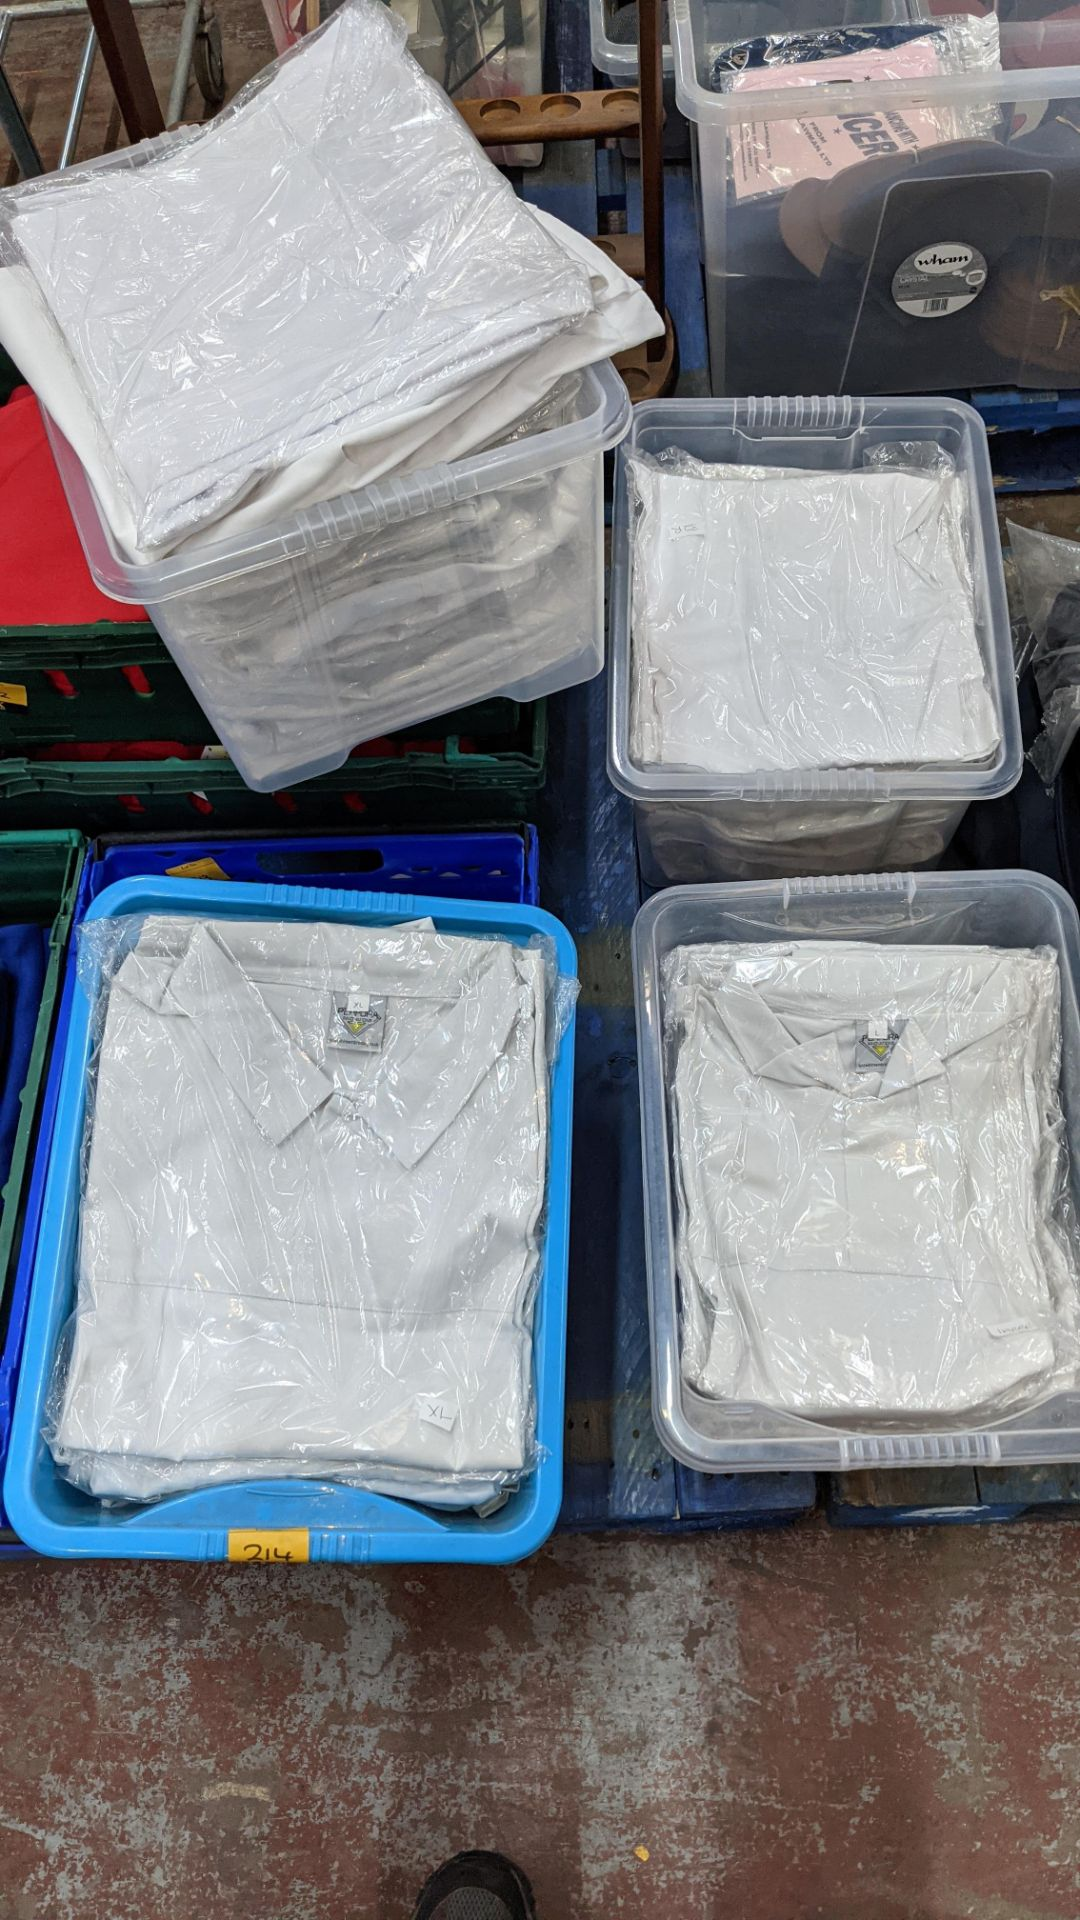 The contents of 4 crates of white clothing, assumed to be for the catering industry. NB crates excl - Image 5 of 5